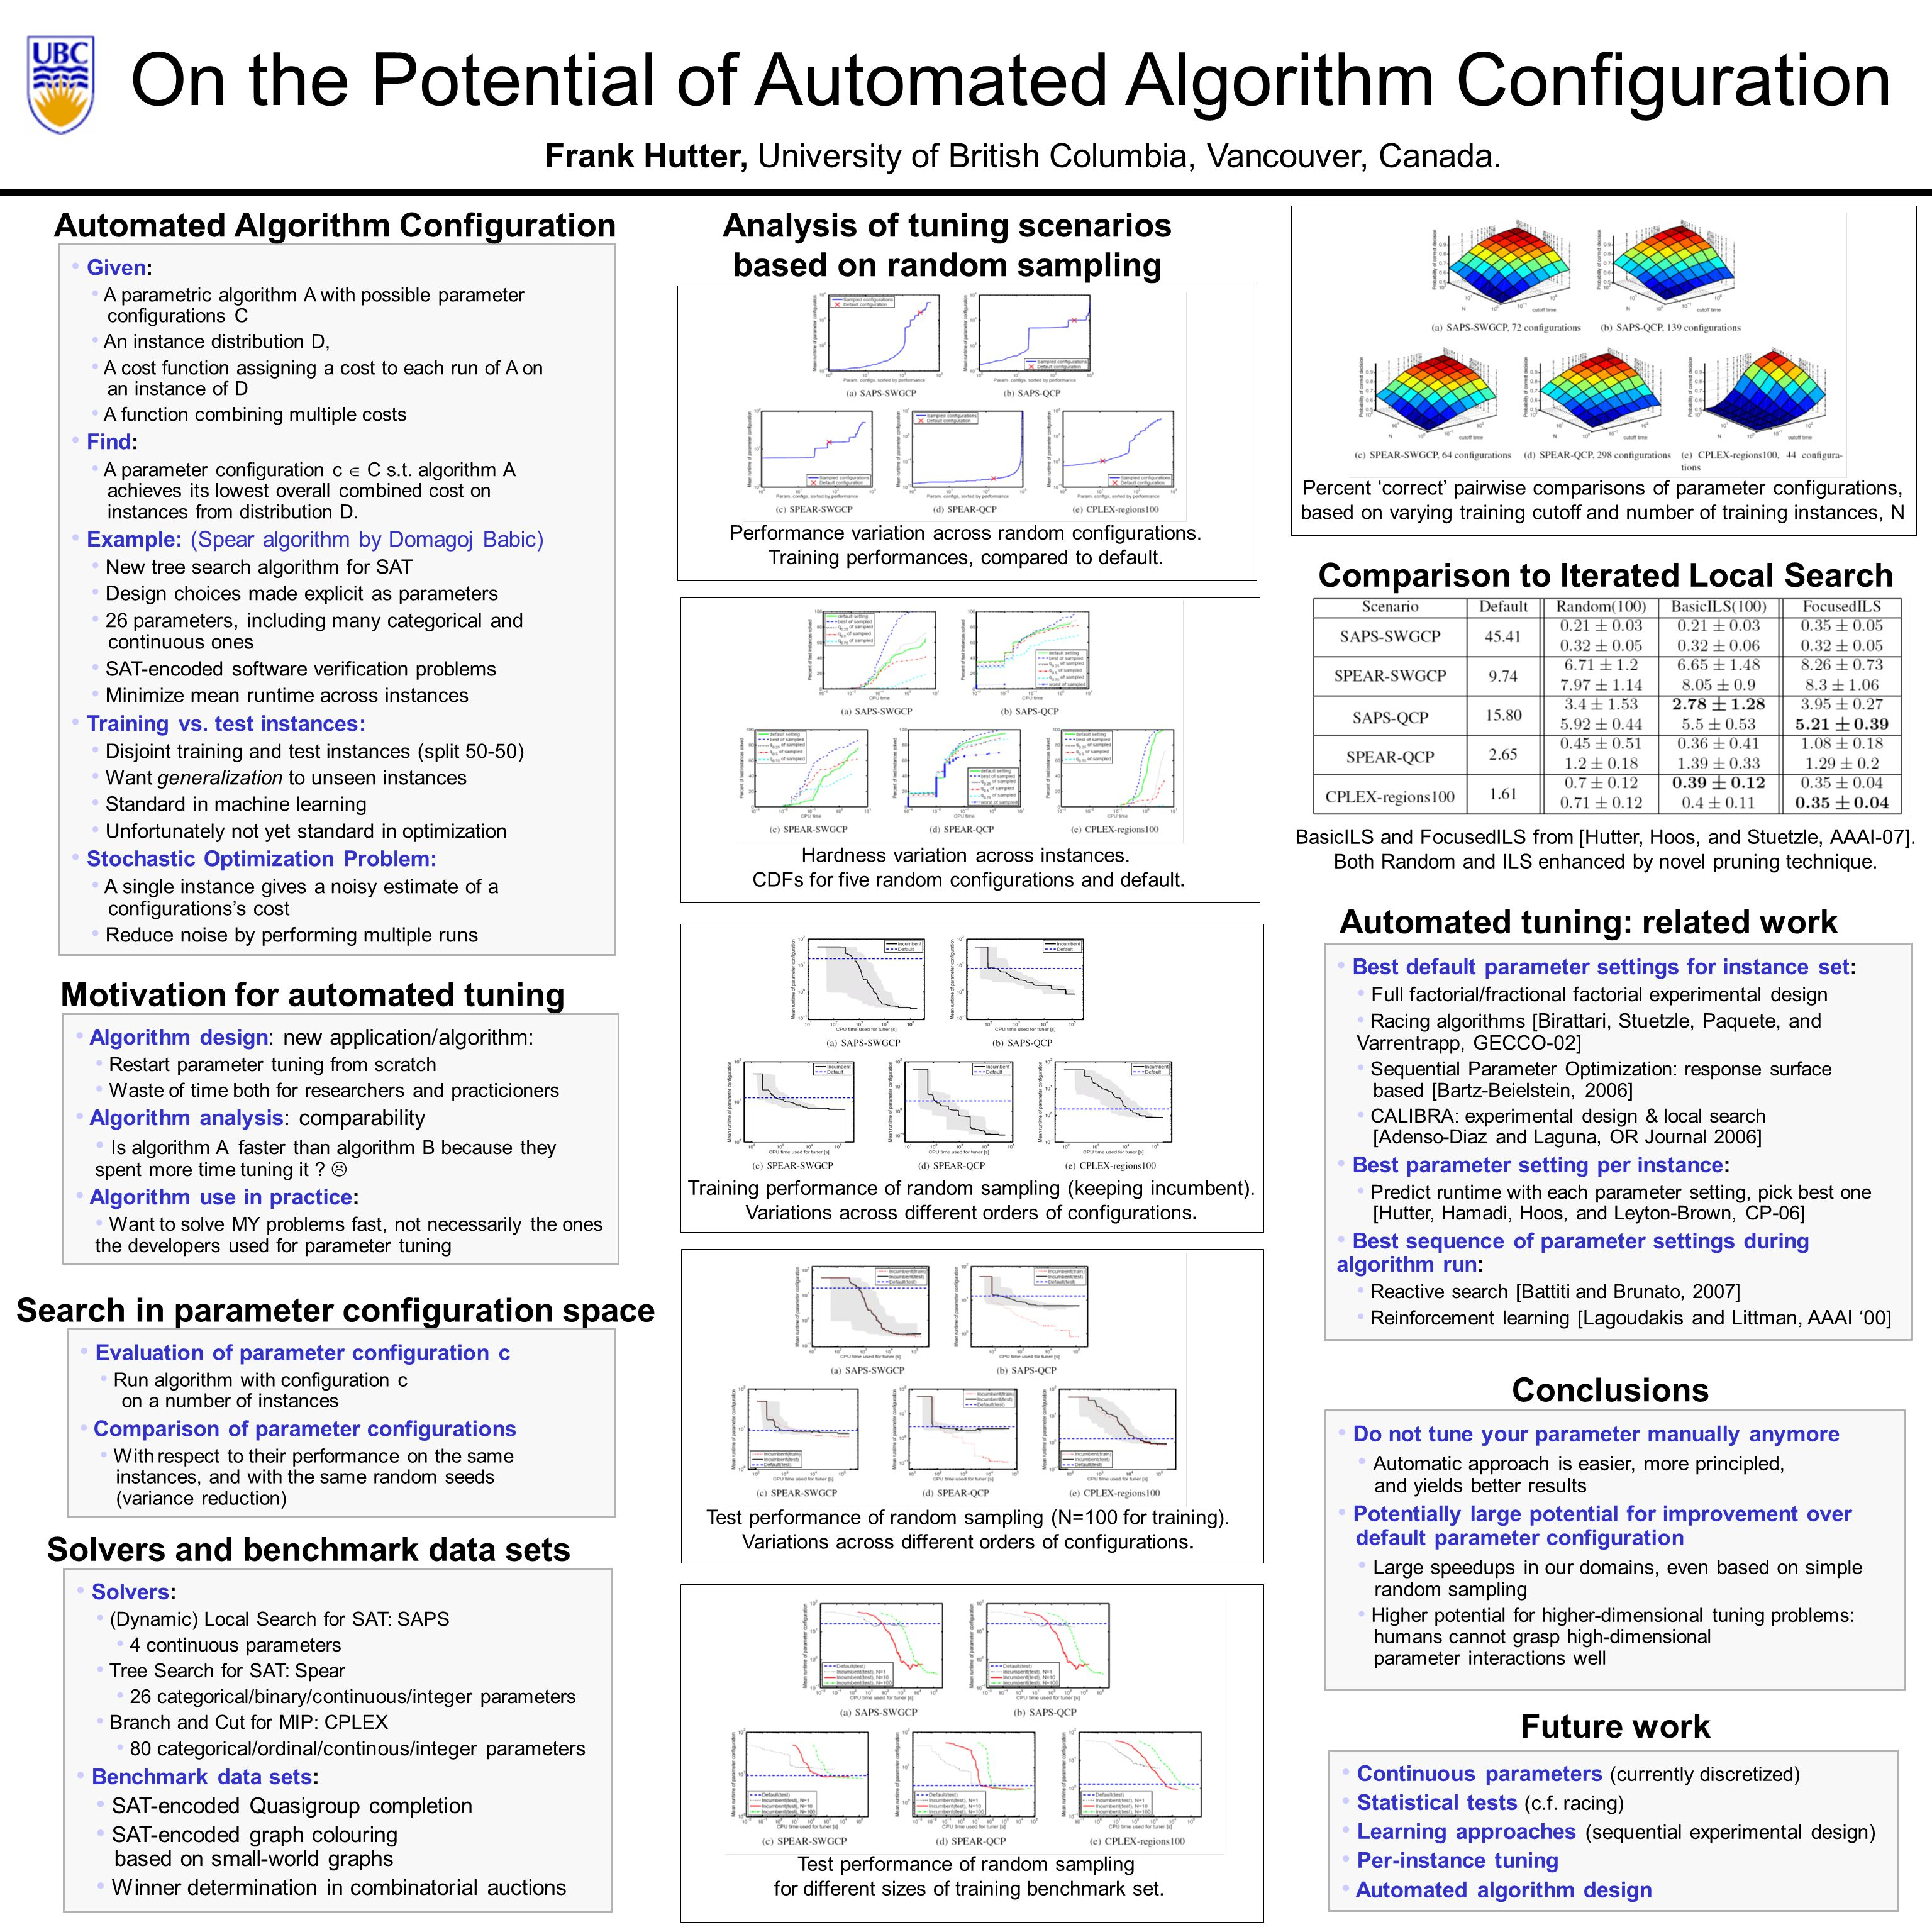 On the Potential of Automated Algorithm Configuration Frank Hutter, University of British Columbia, Vancouver, Canada.